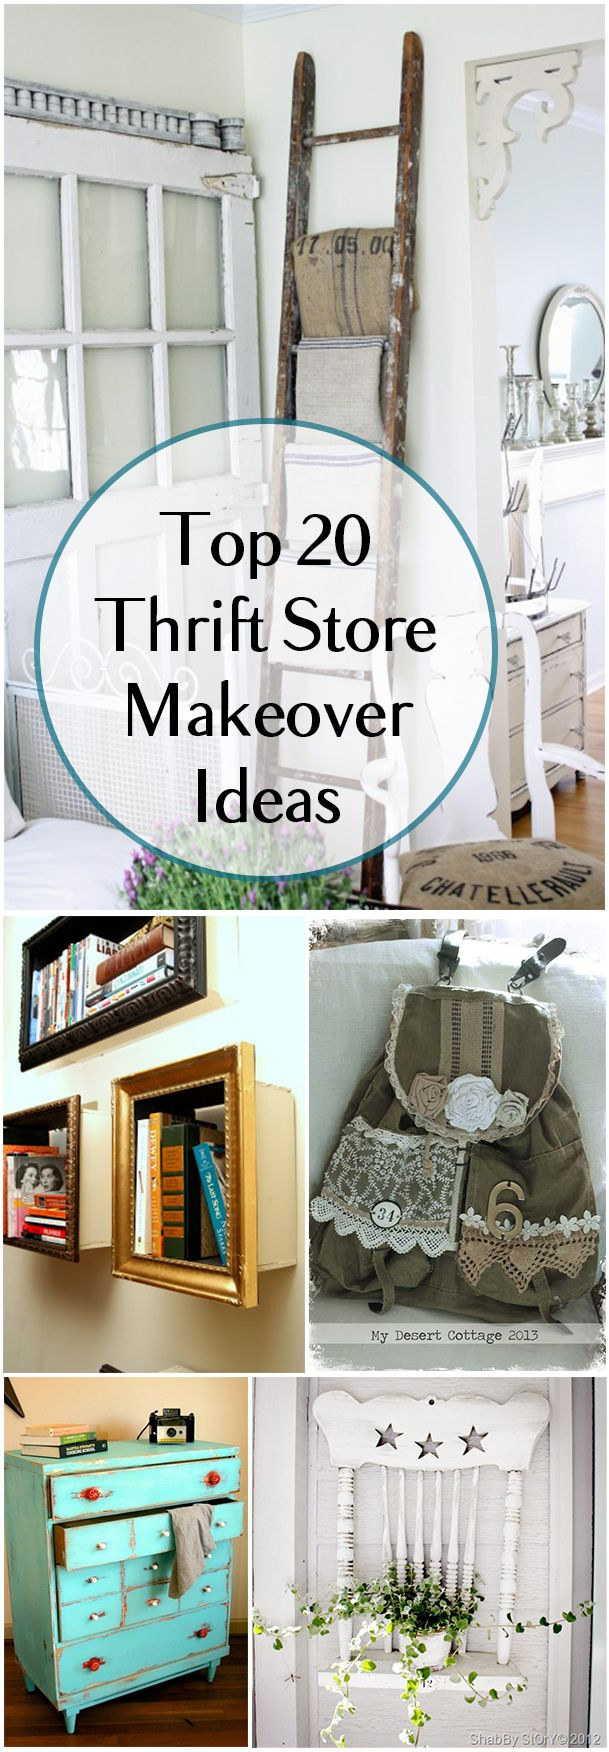 Top 20 Thrifts Store Makeover Projects. Amazing tips, projects and tutorials for your thrift store treasures